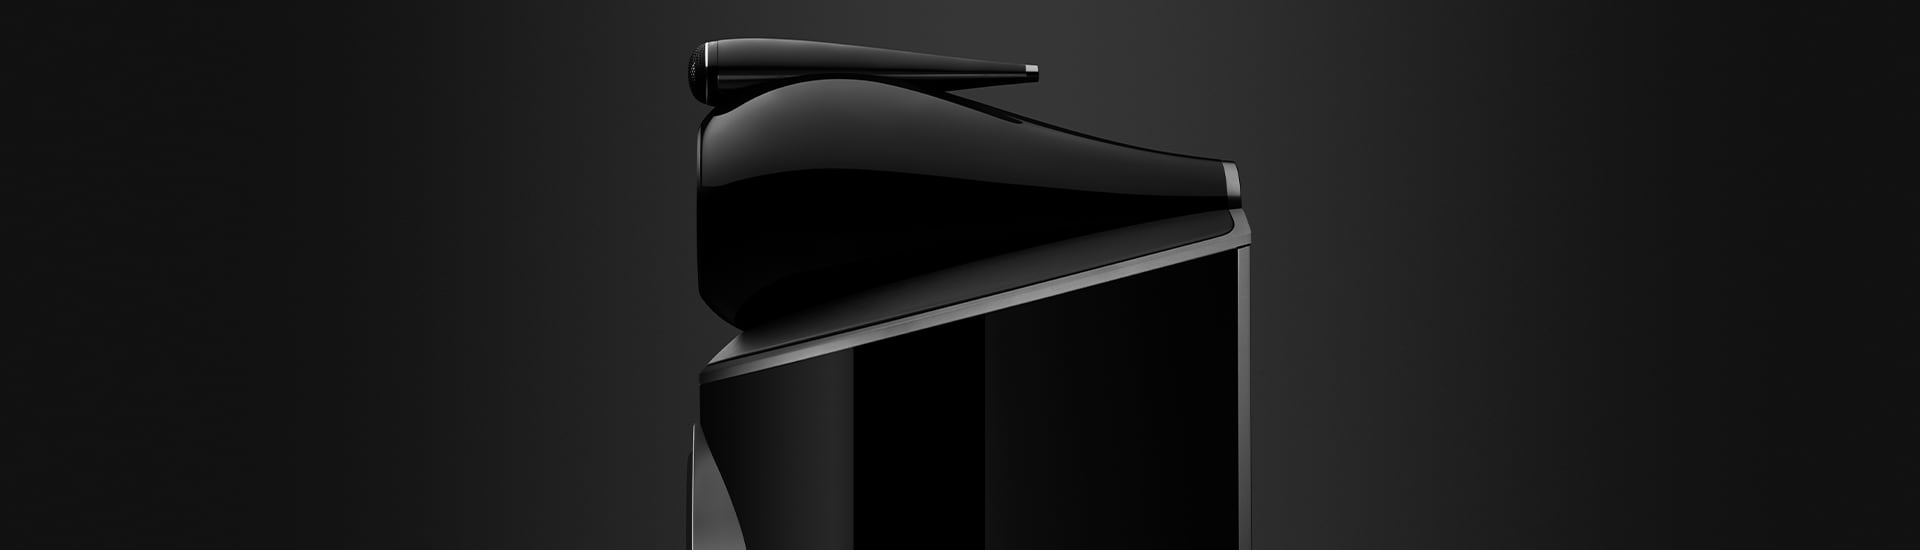 Review: Bowers & Wilkins 800 Series Diamond D4